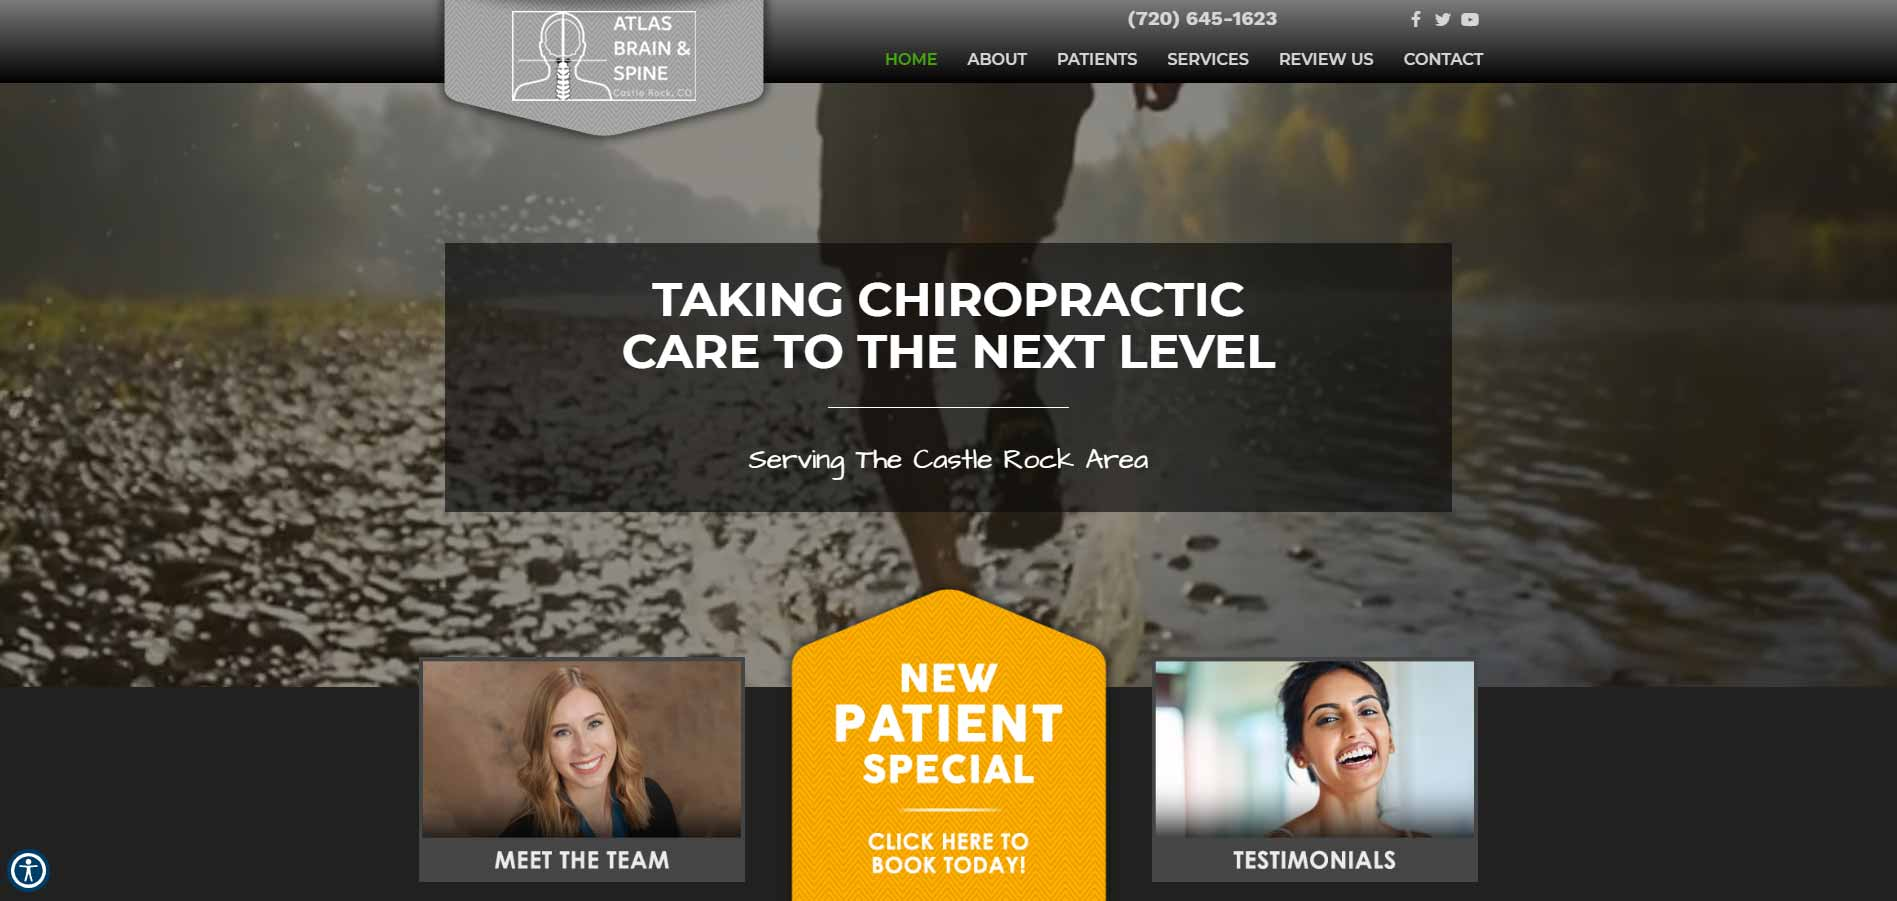 Chiropractor Castle Rock CO Atlas Brain & Spine